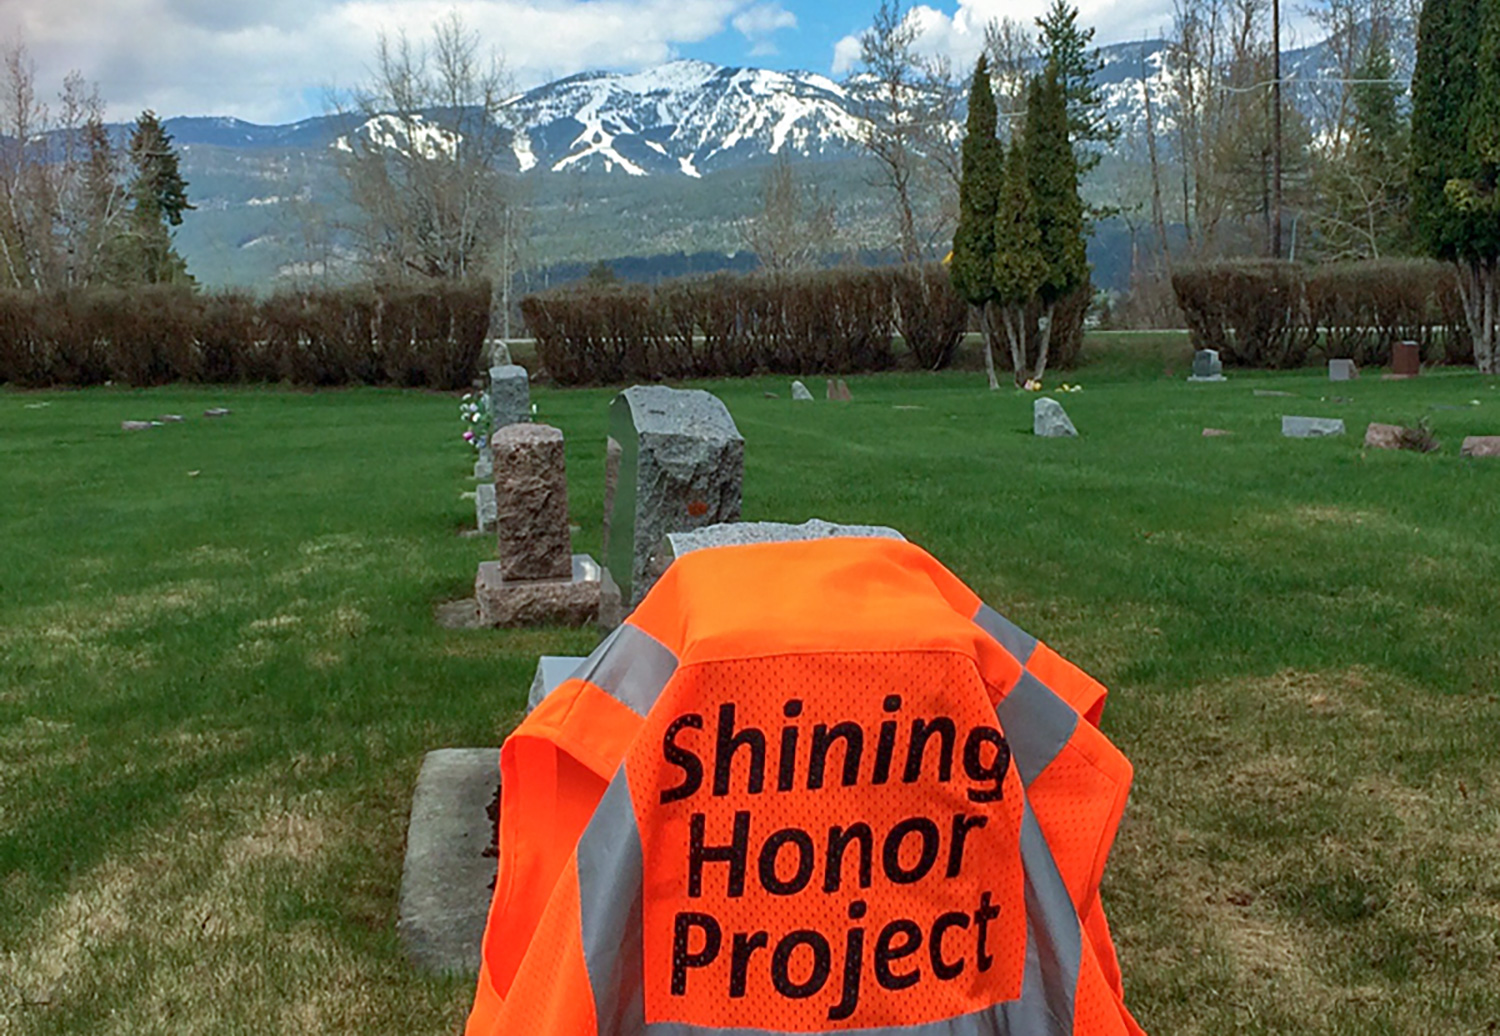 The Shining Honor Project in Montana